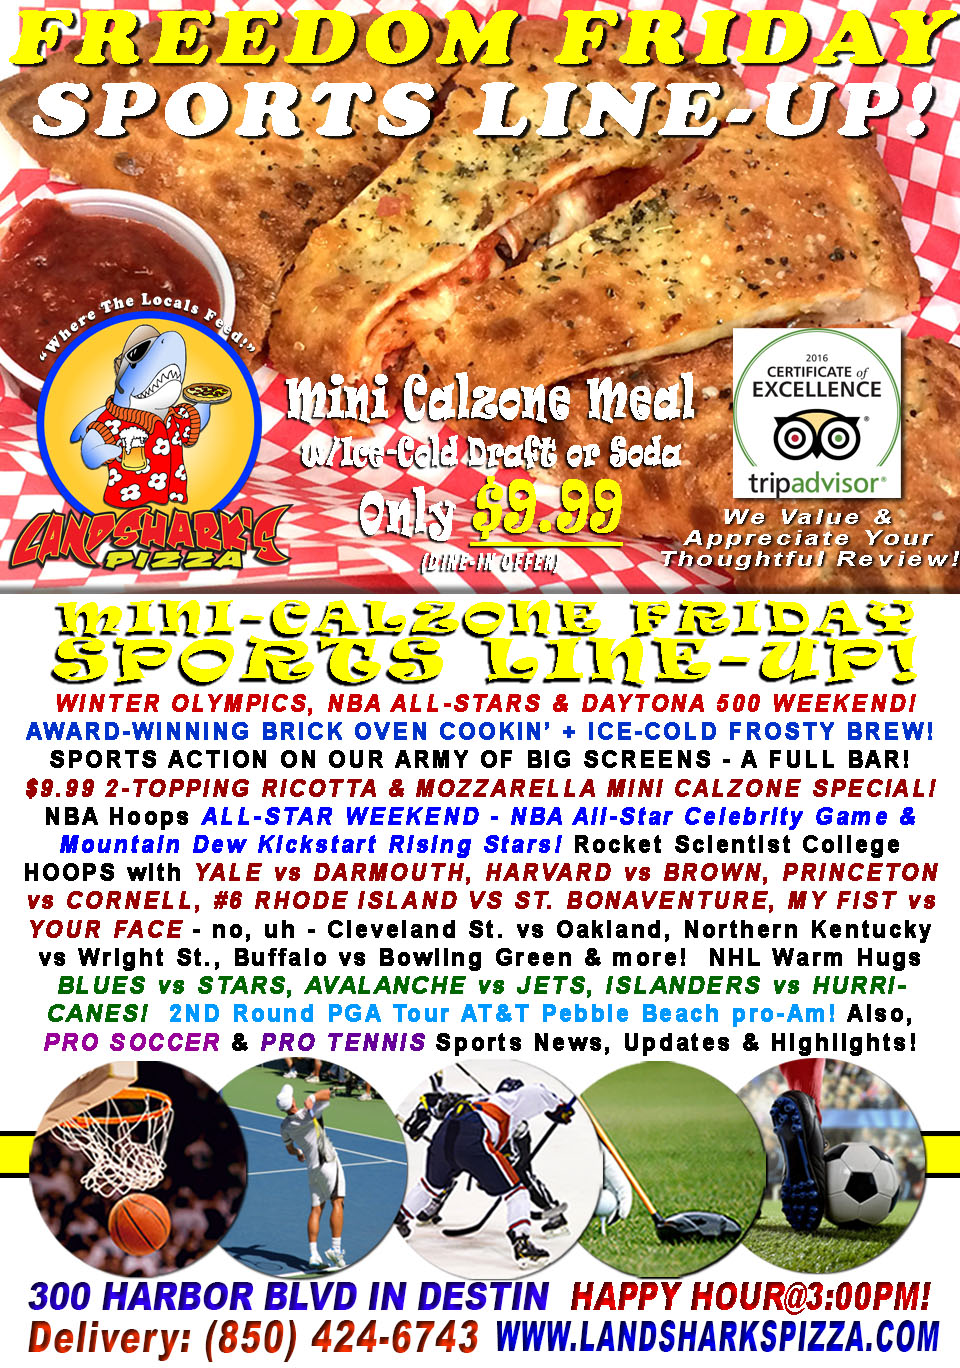 NBA ALL-STAR & WINTER OLYMPICS FREEDOM FRIDAY TWO-TOPPING CALZONE & Brew $9.99 – NCAA NHL & PGA!